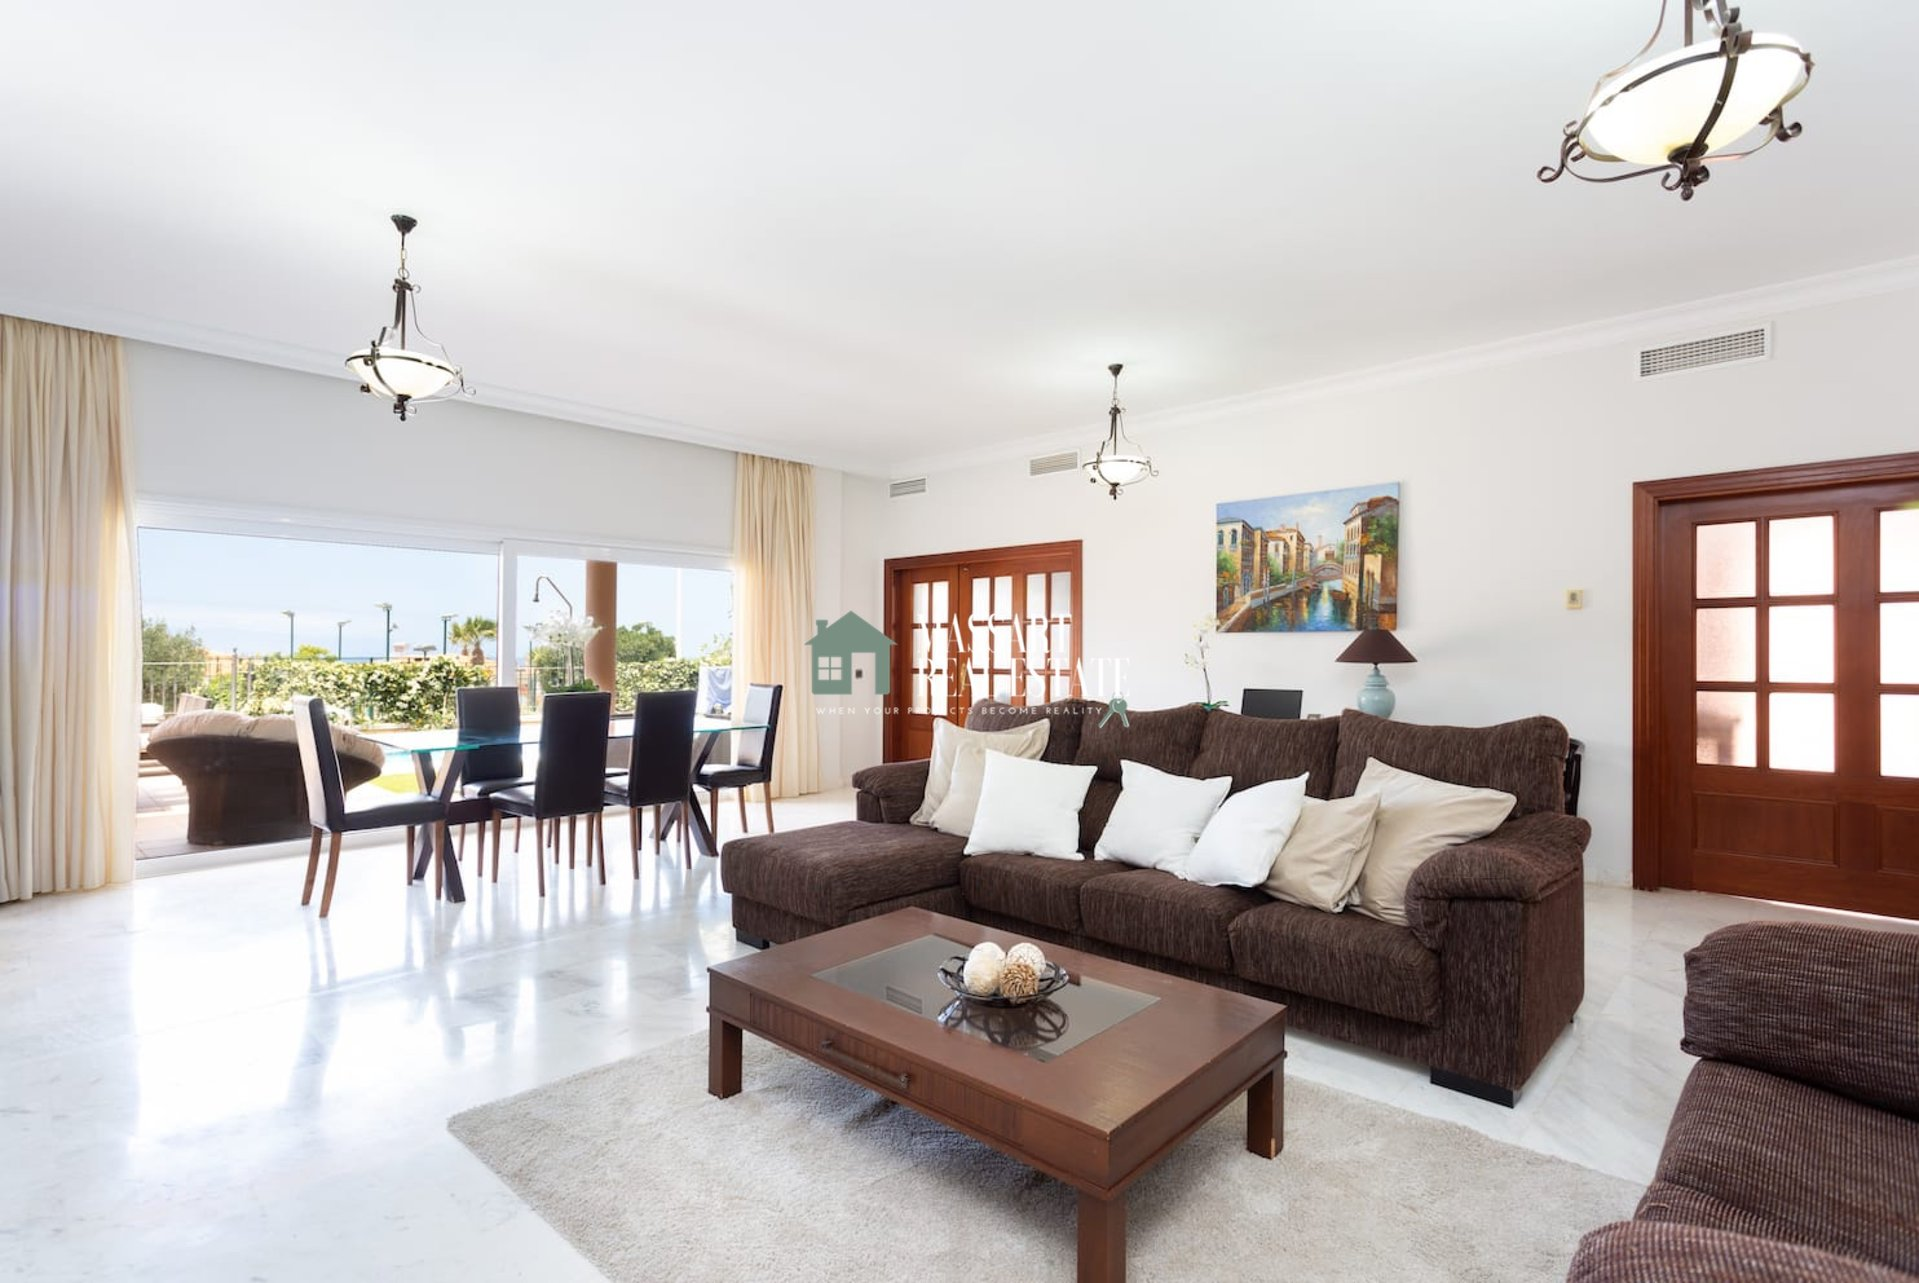 For SALE in the well-known area of ​​Playa la Arena (Puerto De Santiago), luxurious villa with a total area of ​​368 m2 distributed over two floors.